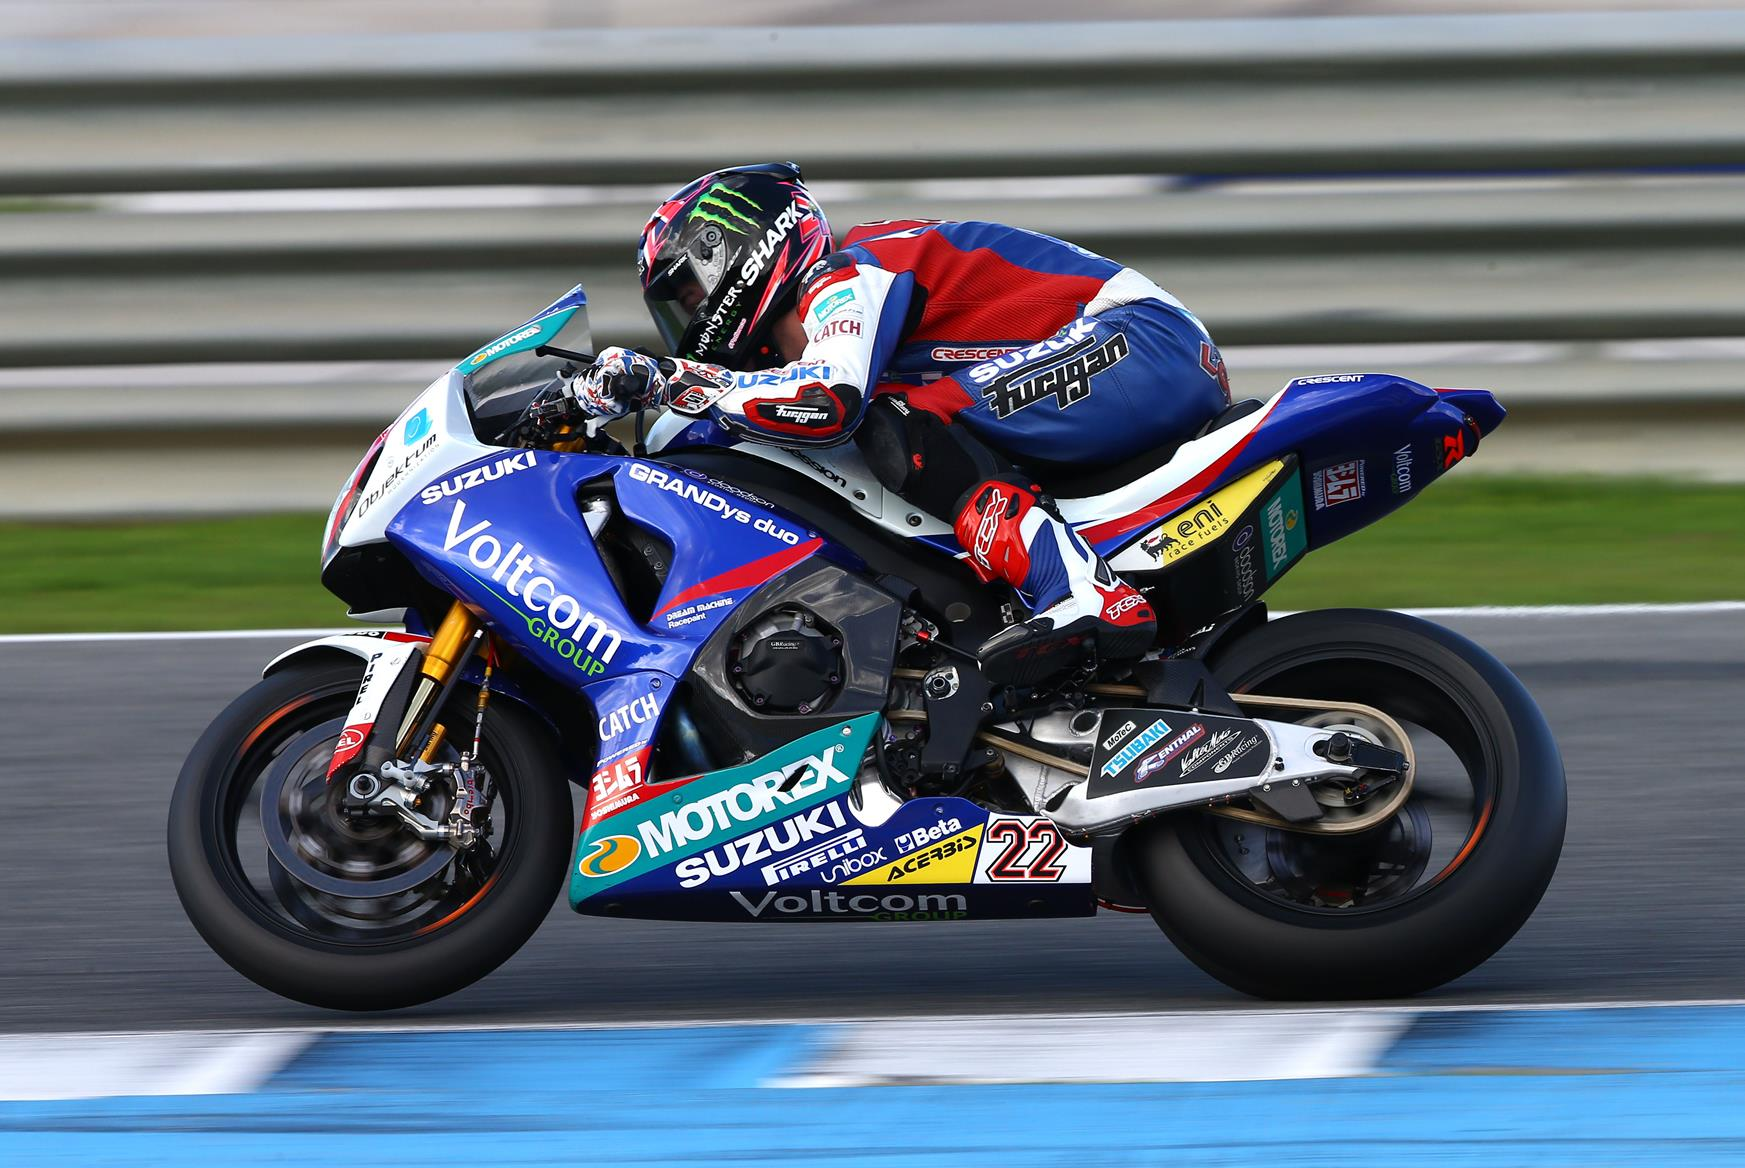 Lowes Fastest Superbike As Jerez Finally Dries Out Mcn Circuit Tester